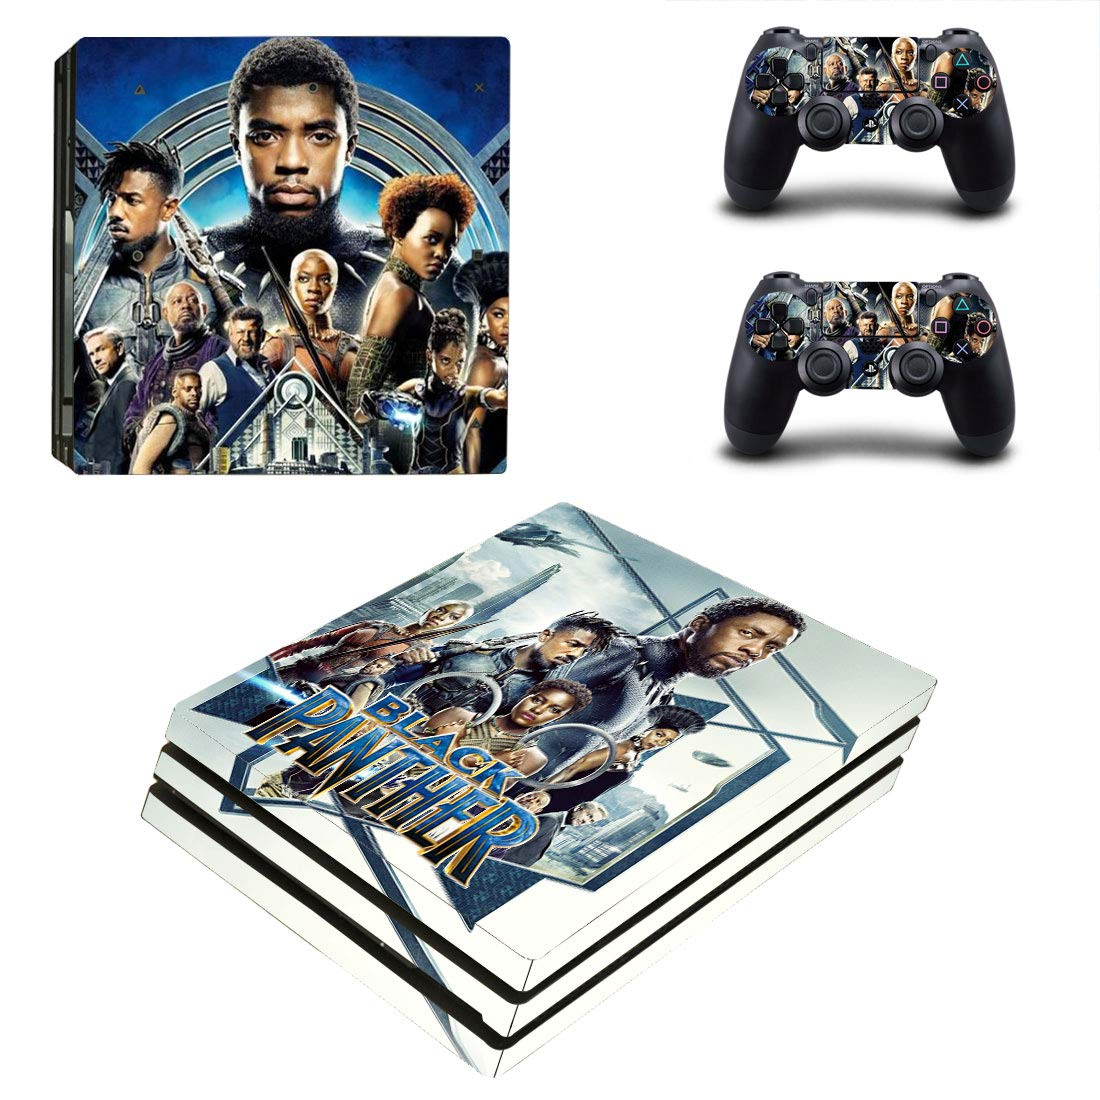 Adventure Games - PS4 PRO - Black Panther, Cast - Playstation 4 Vinyl Console Skin Decal Sticker + 2 Controller Skins Set